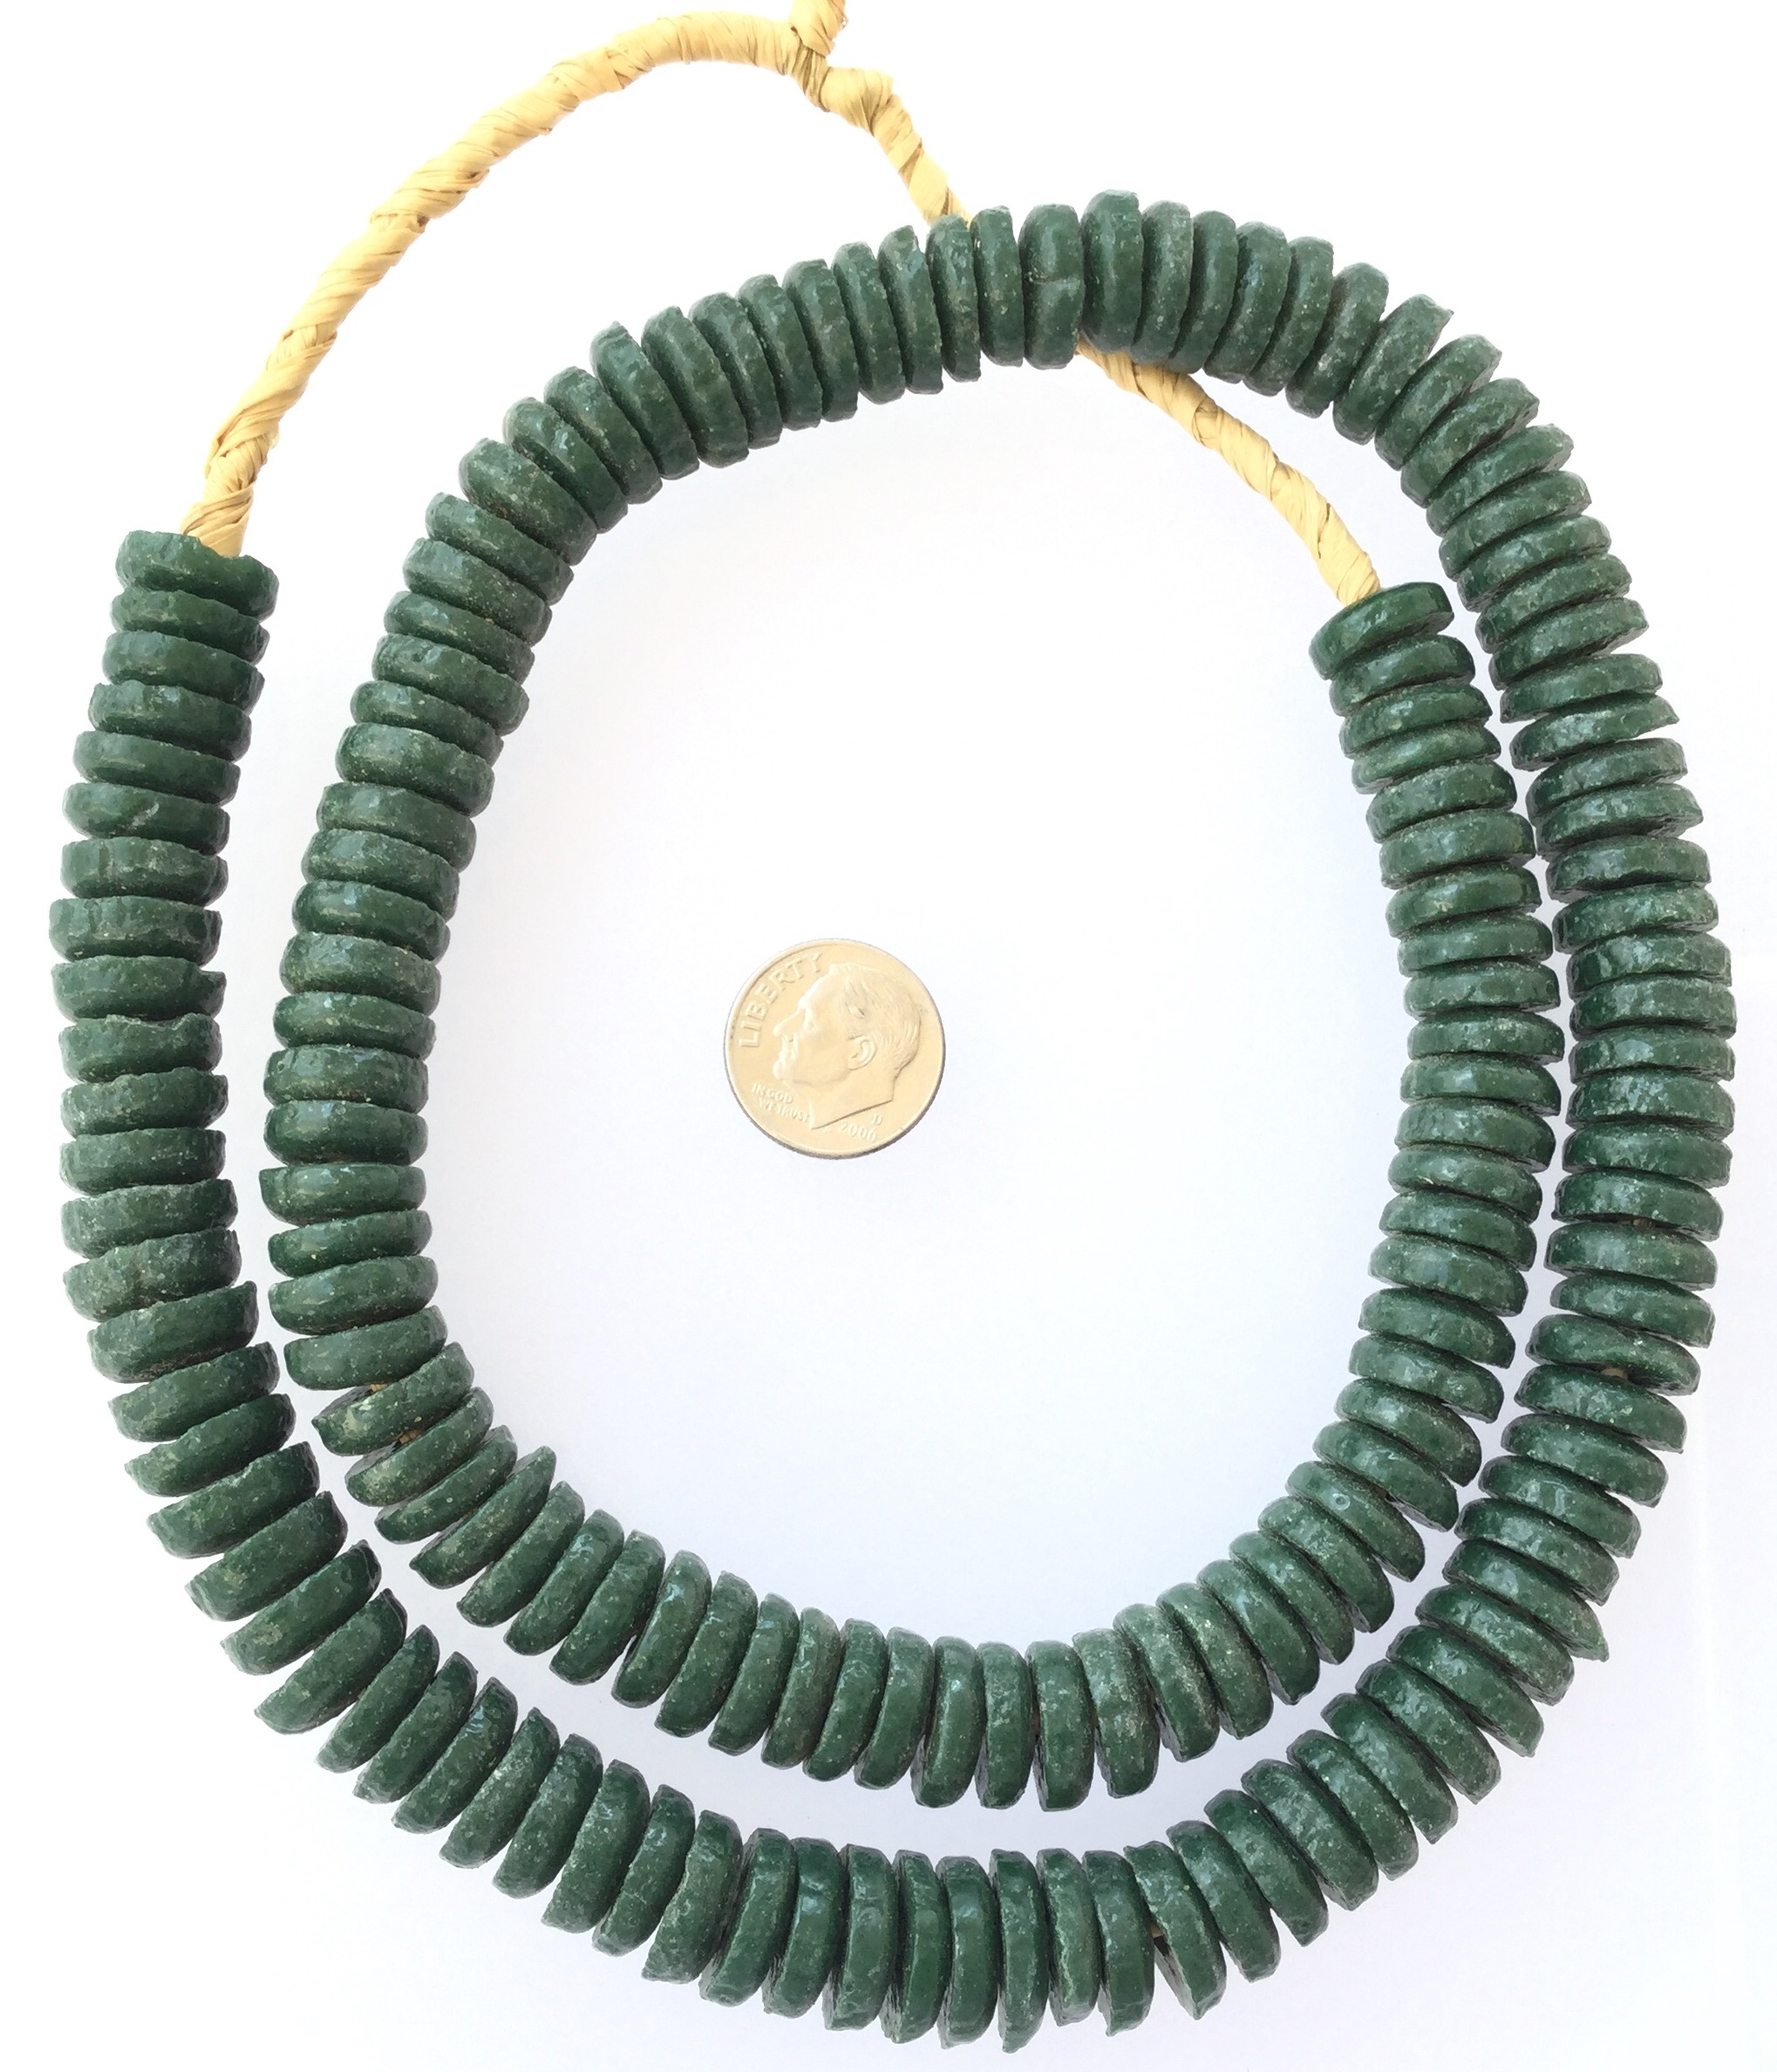 Big Large Hole Beads SALE African Recycled Glass Krobo Beads 12mm Green